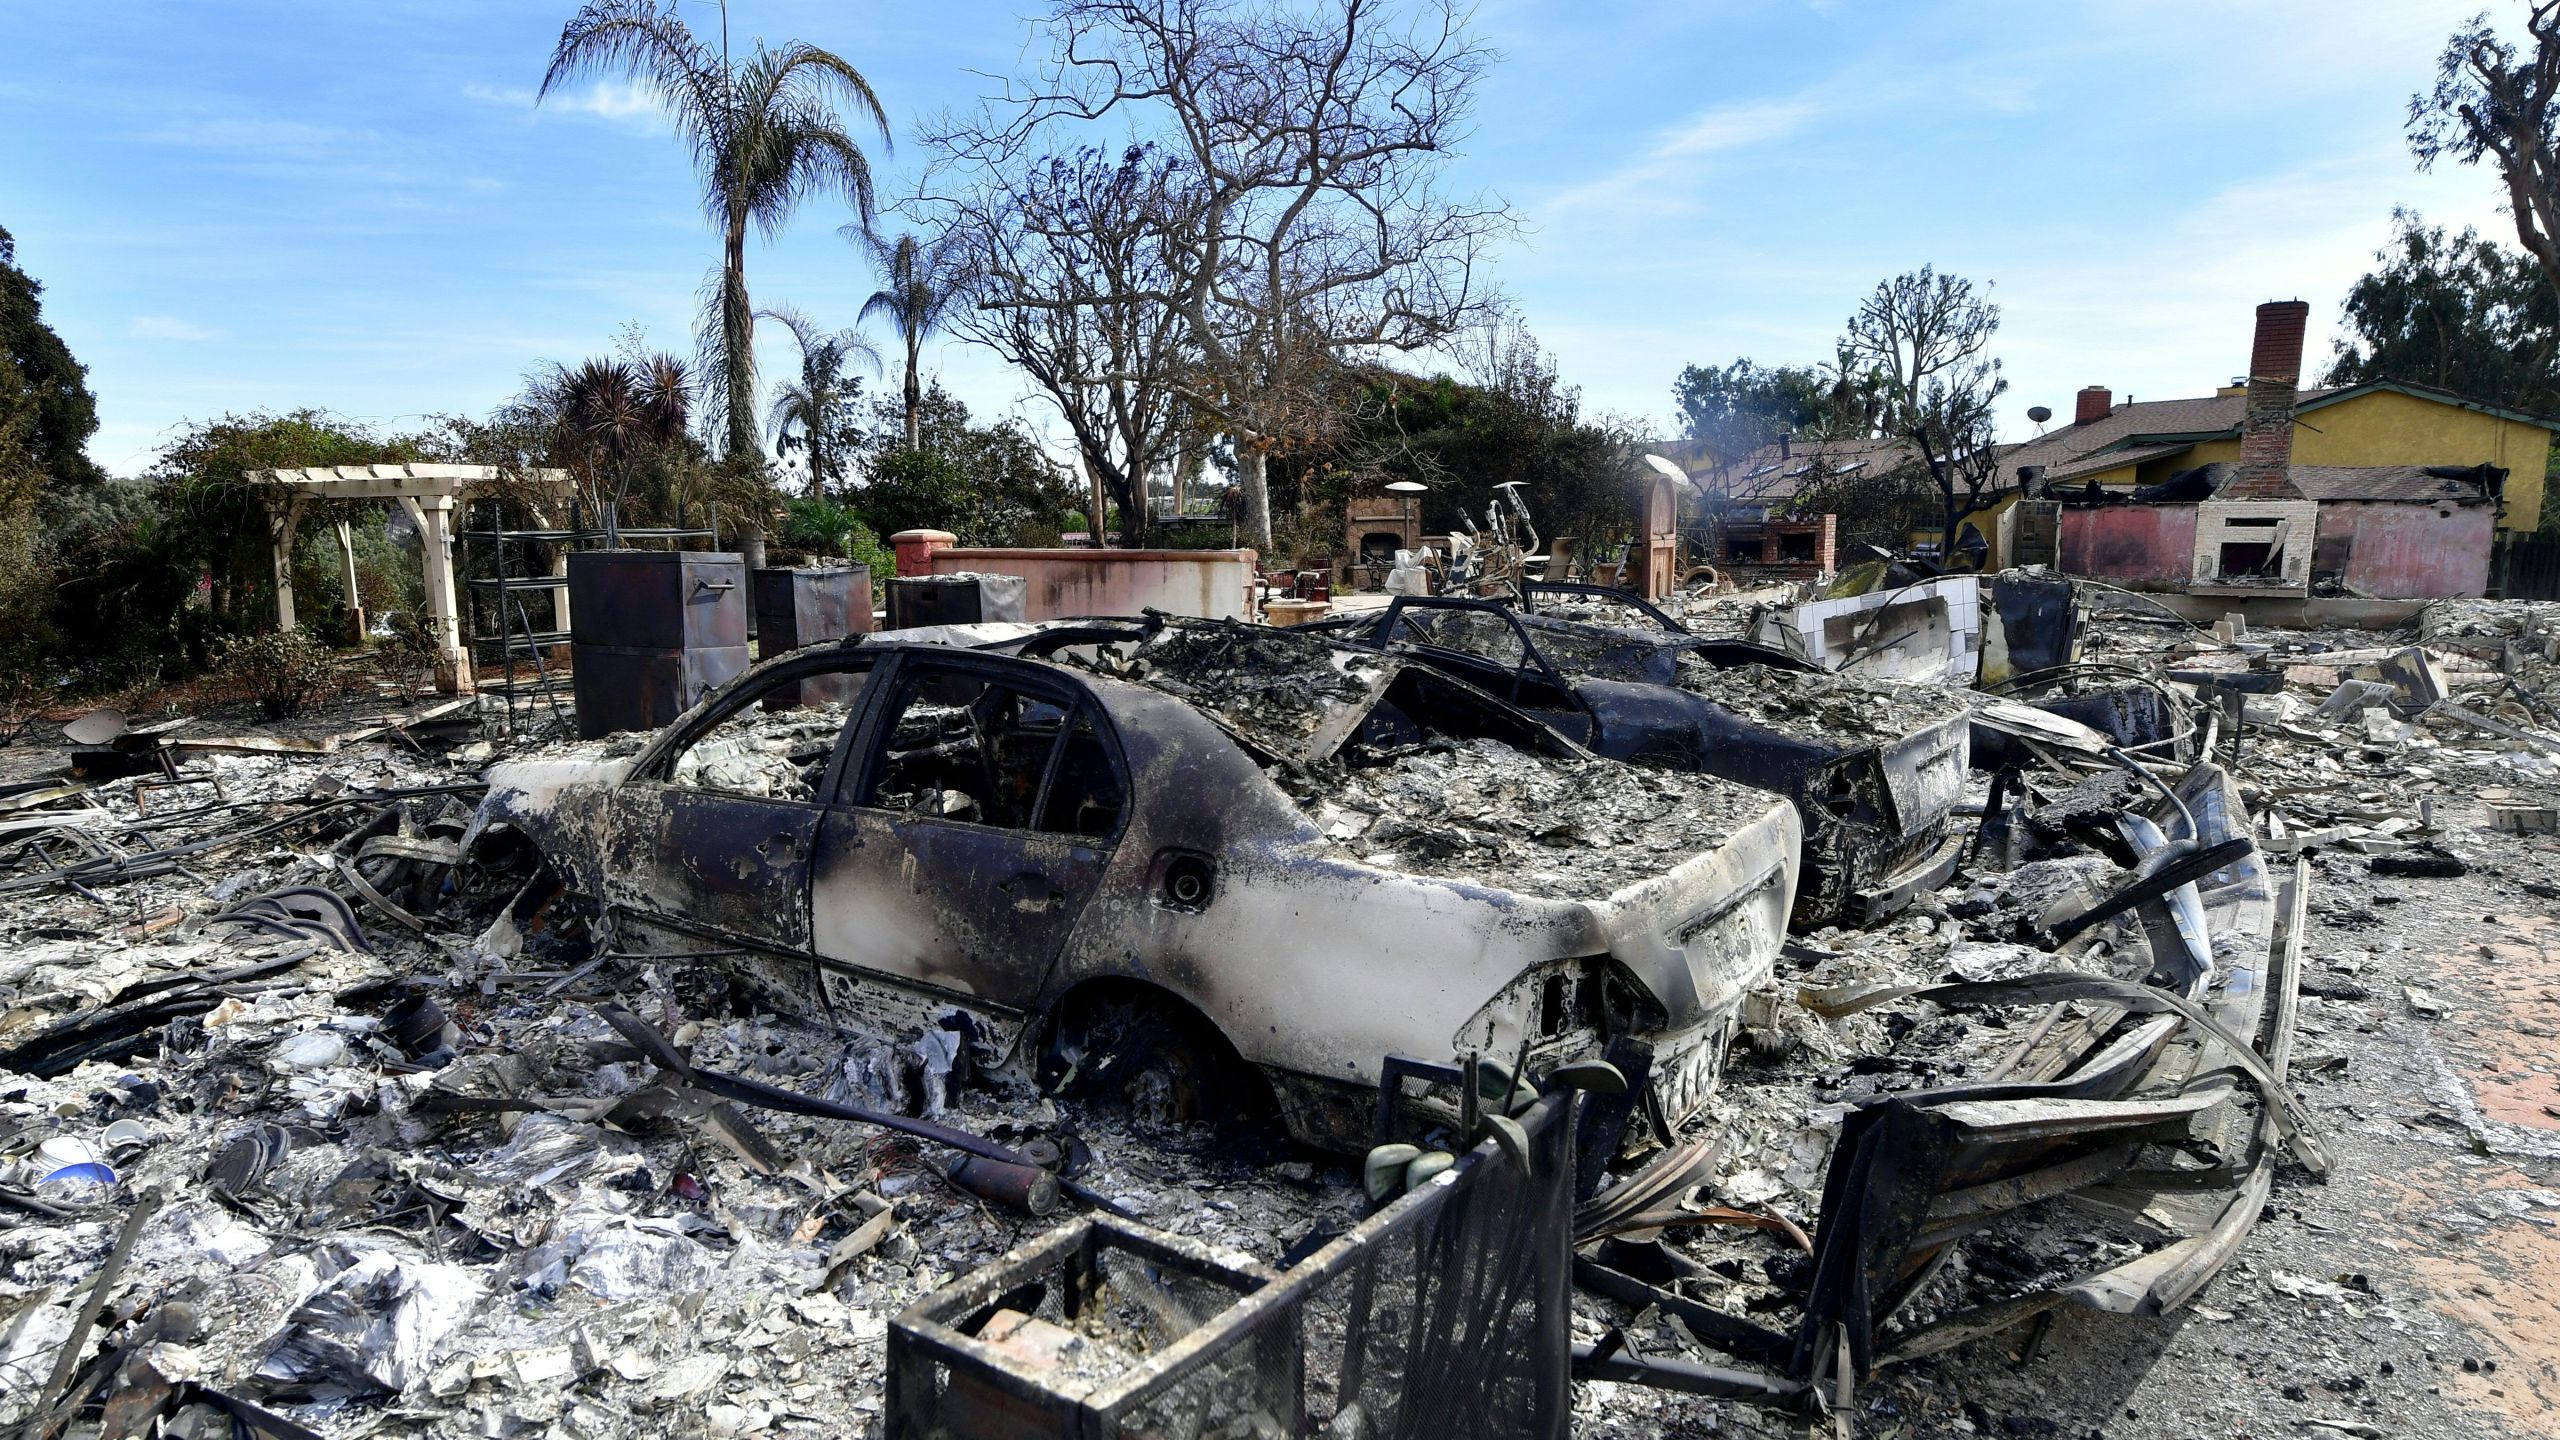 The remains of burnt down homes and vehicles resulting from the Woolsey Fire are seen on Busch Drive in Malibu on November 13, 2018. -. (Credit: FREDERIC J. BROWN/AFP/Getty Images)